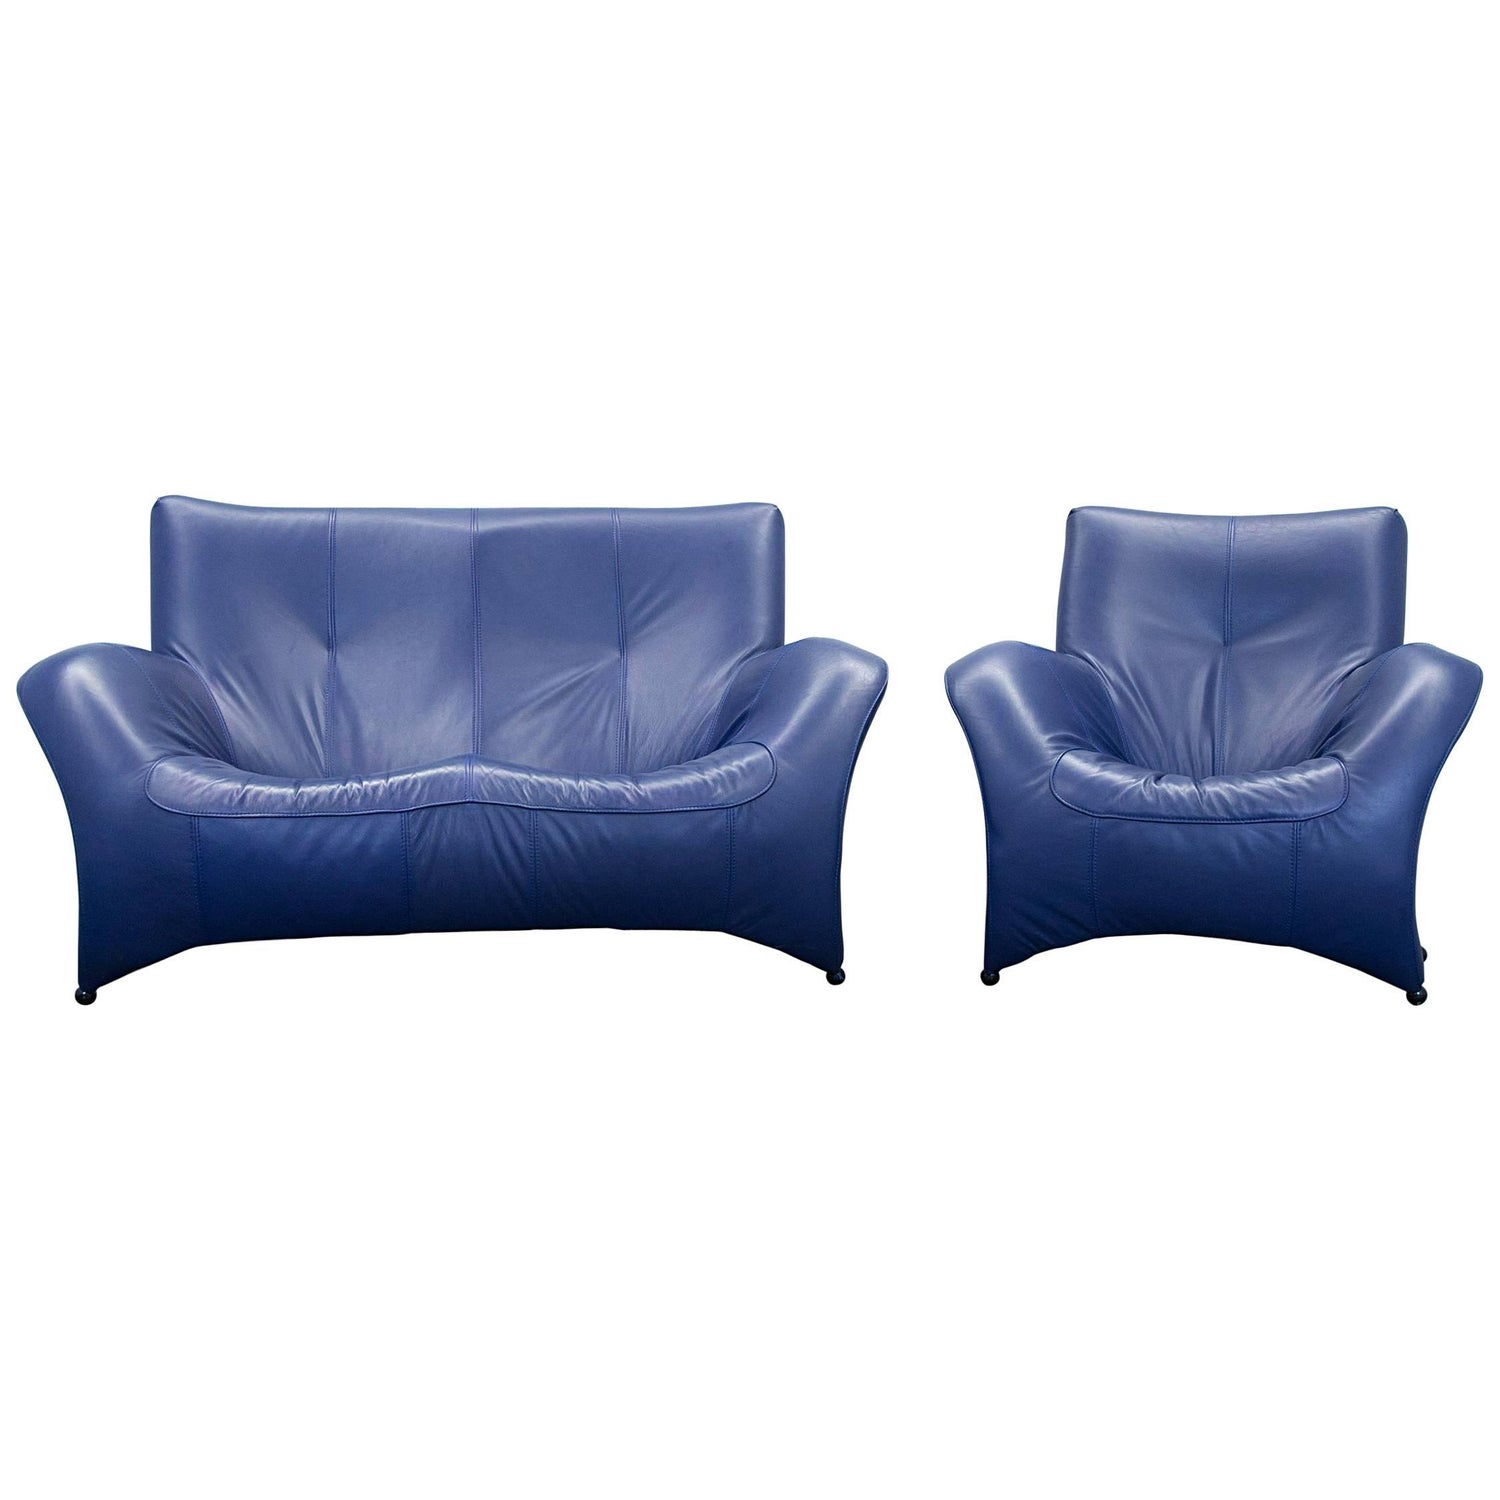 Designer Sofa Set Leather Blue Two Seat Couch Modern For Sale at